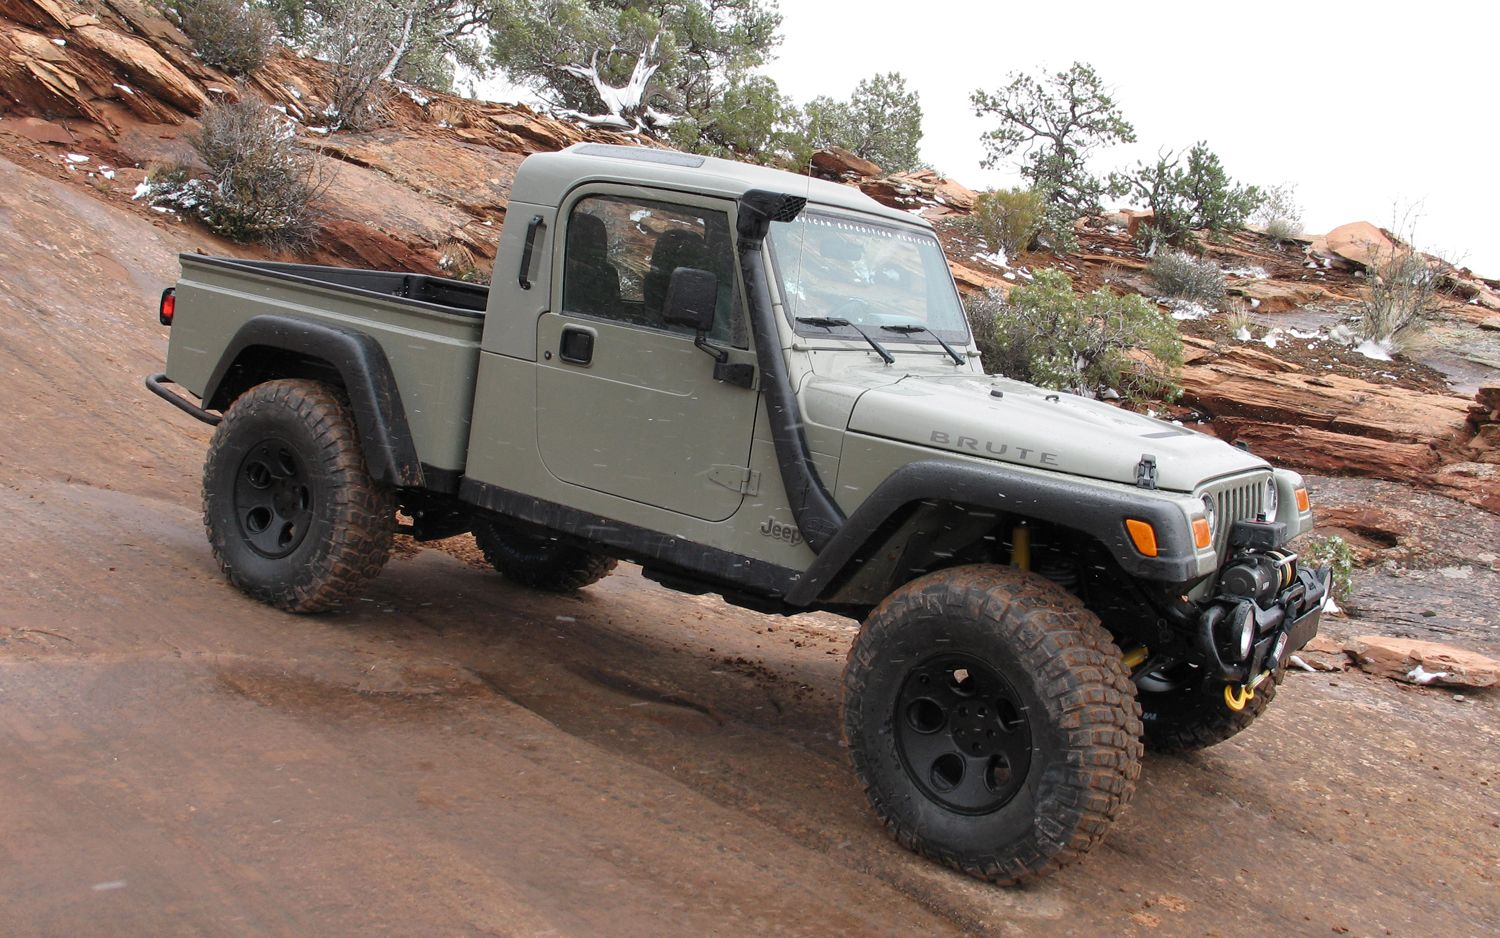 Jeep Wrangler Truck Conversion By Aev Called The Brute Badass